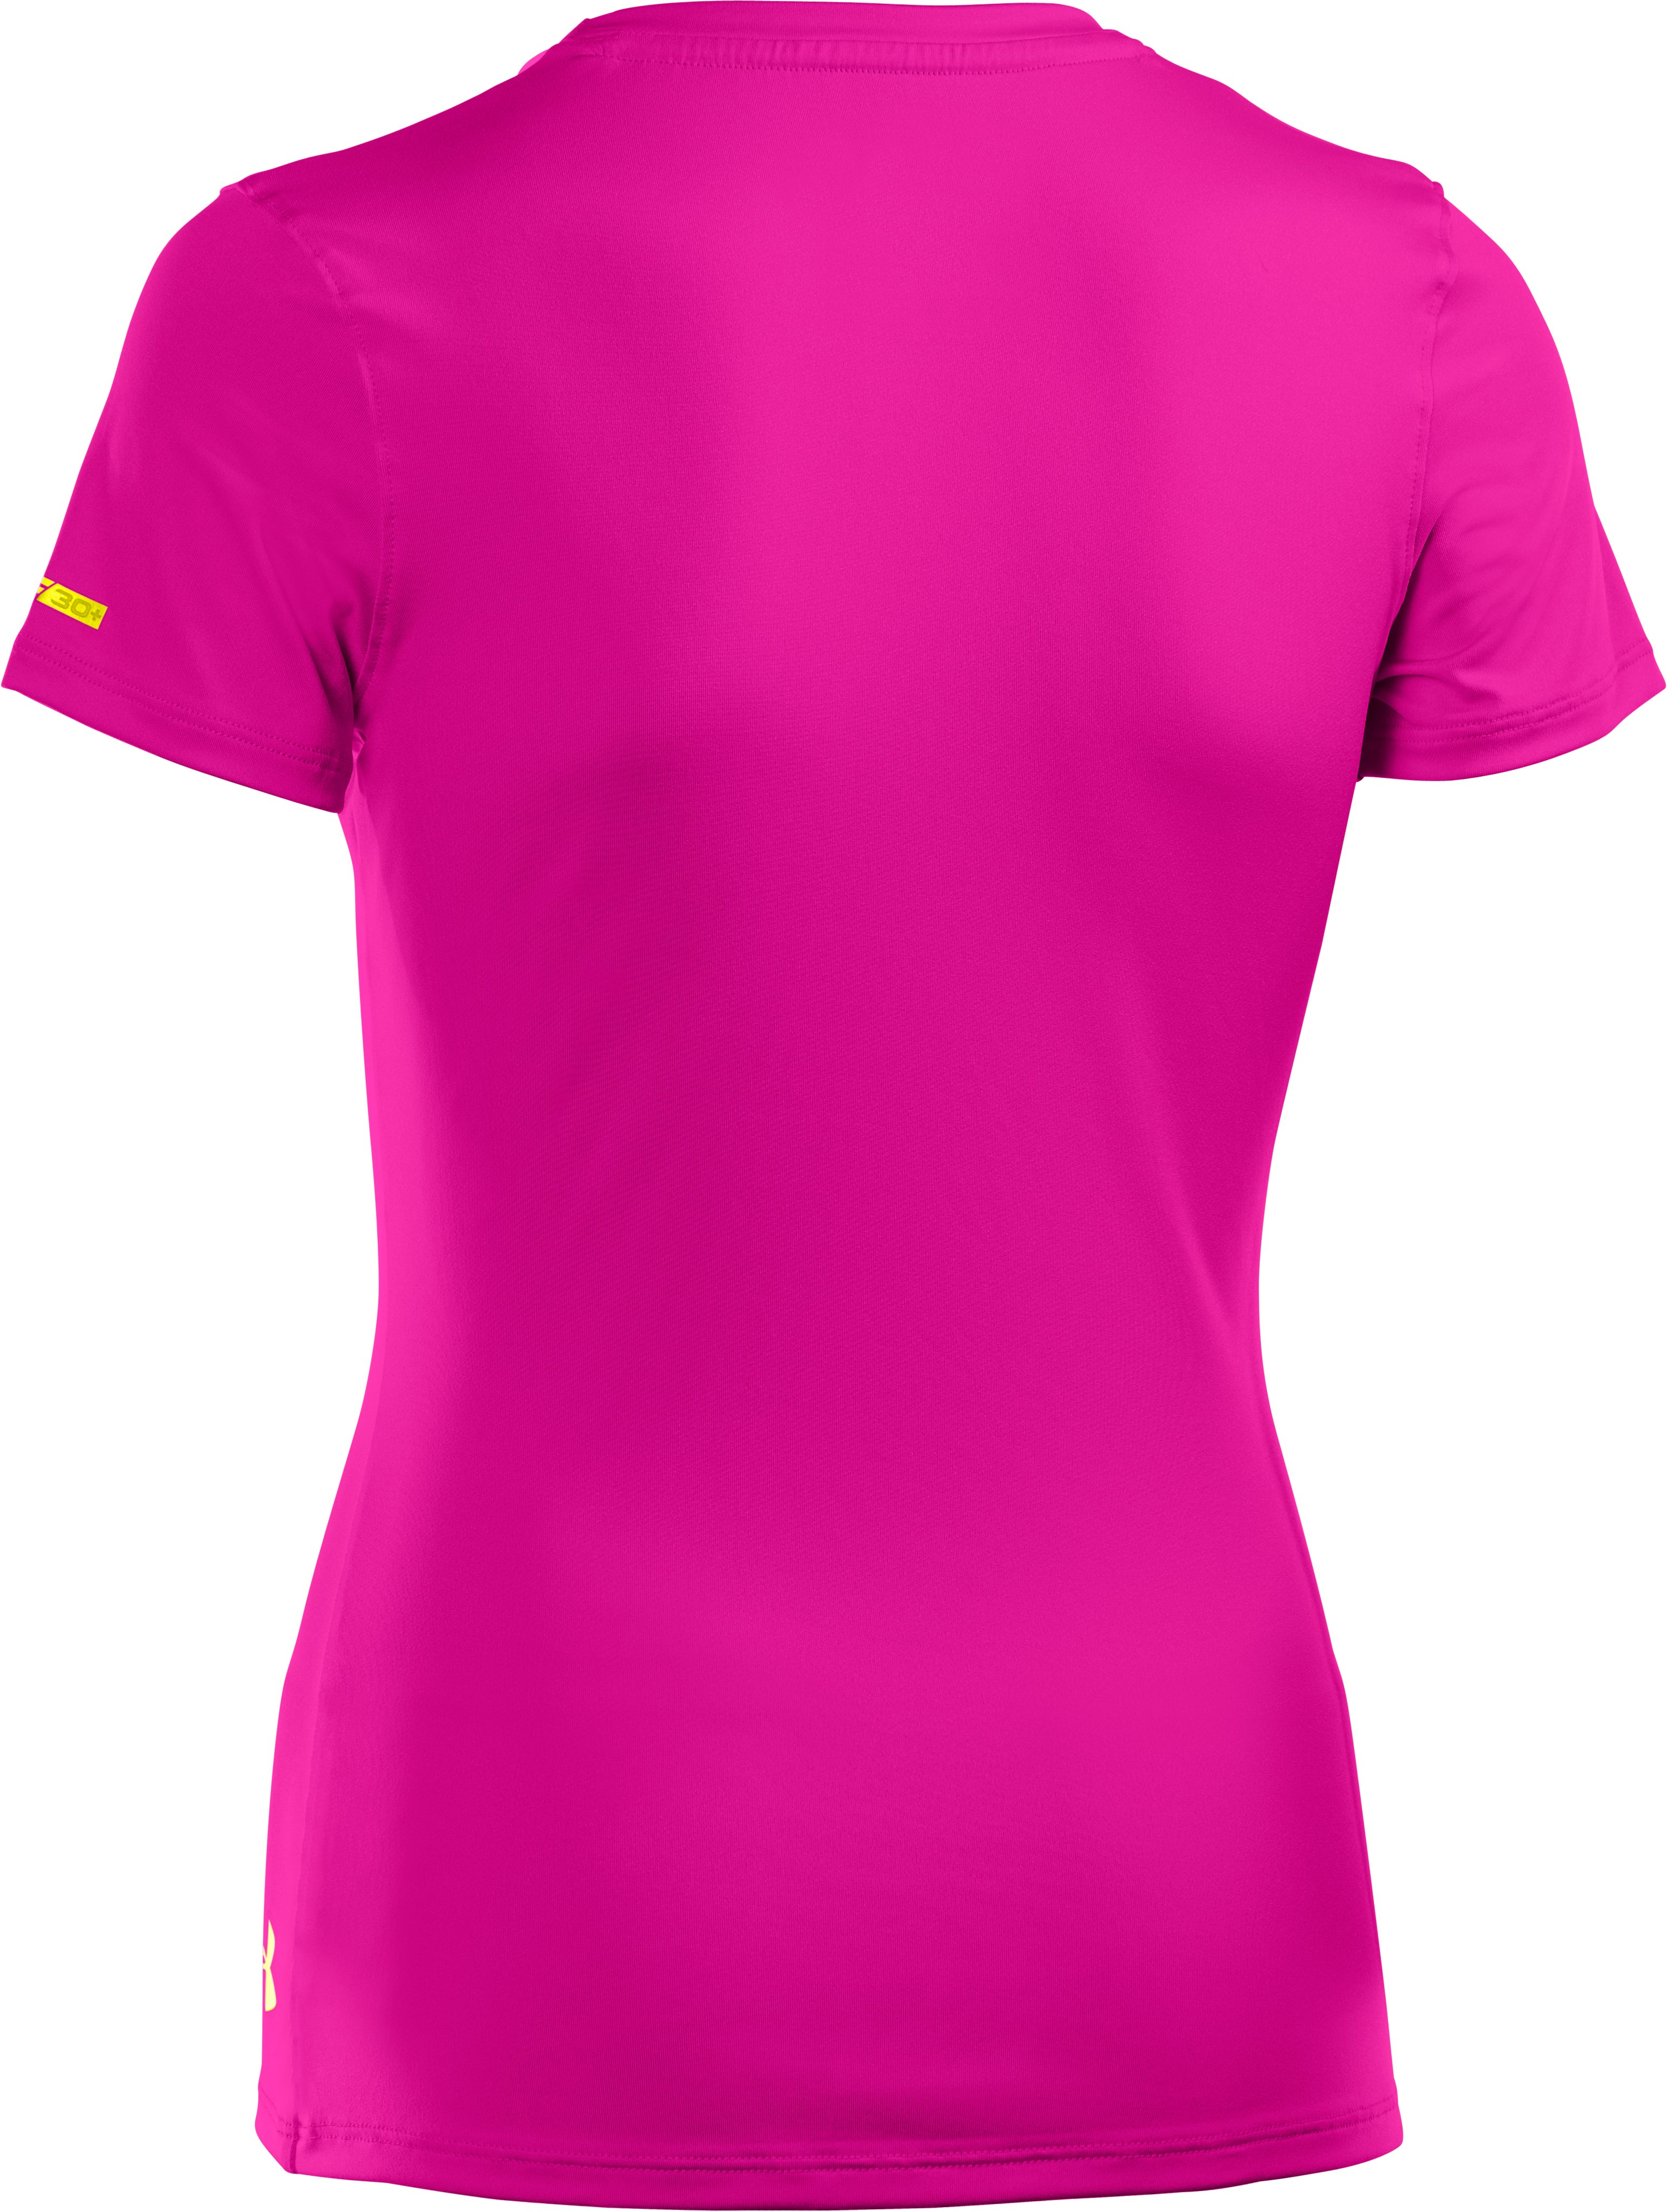 Girls' HeatGear® Sonic Short Sleeve, Tropic Pink, undefined